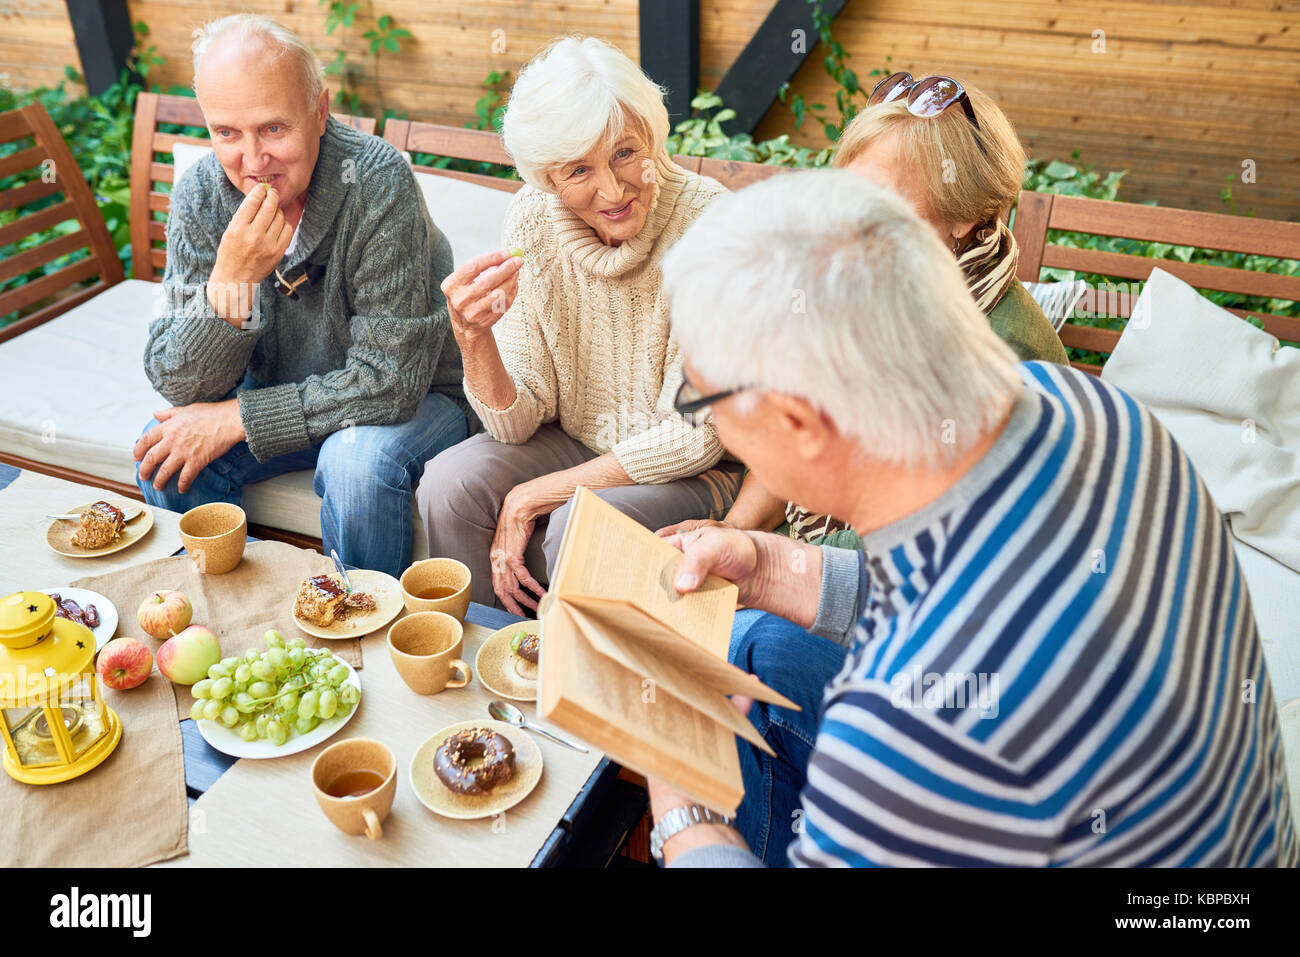 Group of joyful senior friends having fun outdoors: they enjoying delicious pastry and fragrant coffee while elderly - Stock Image